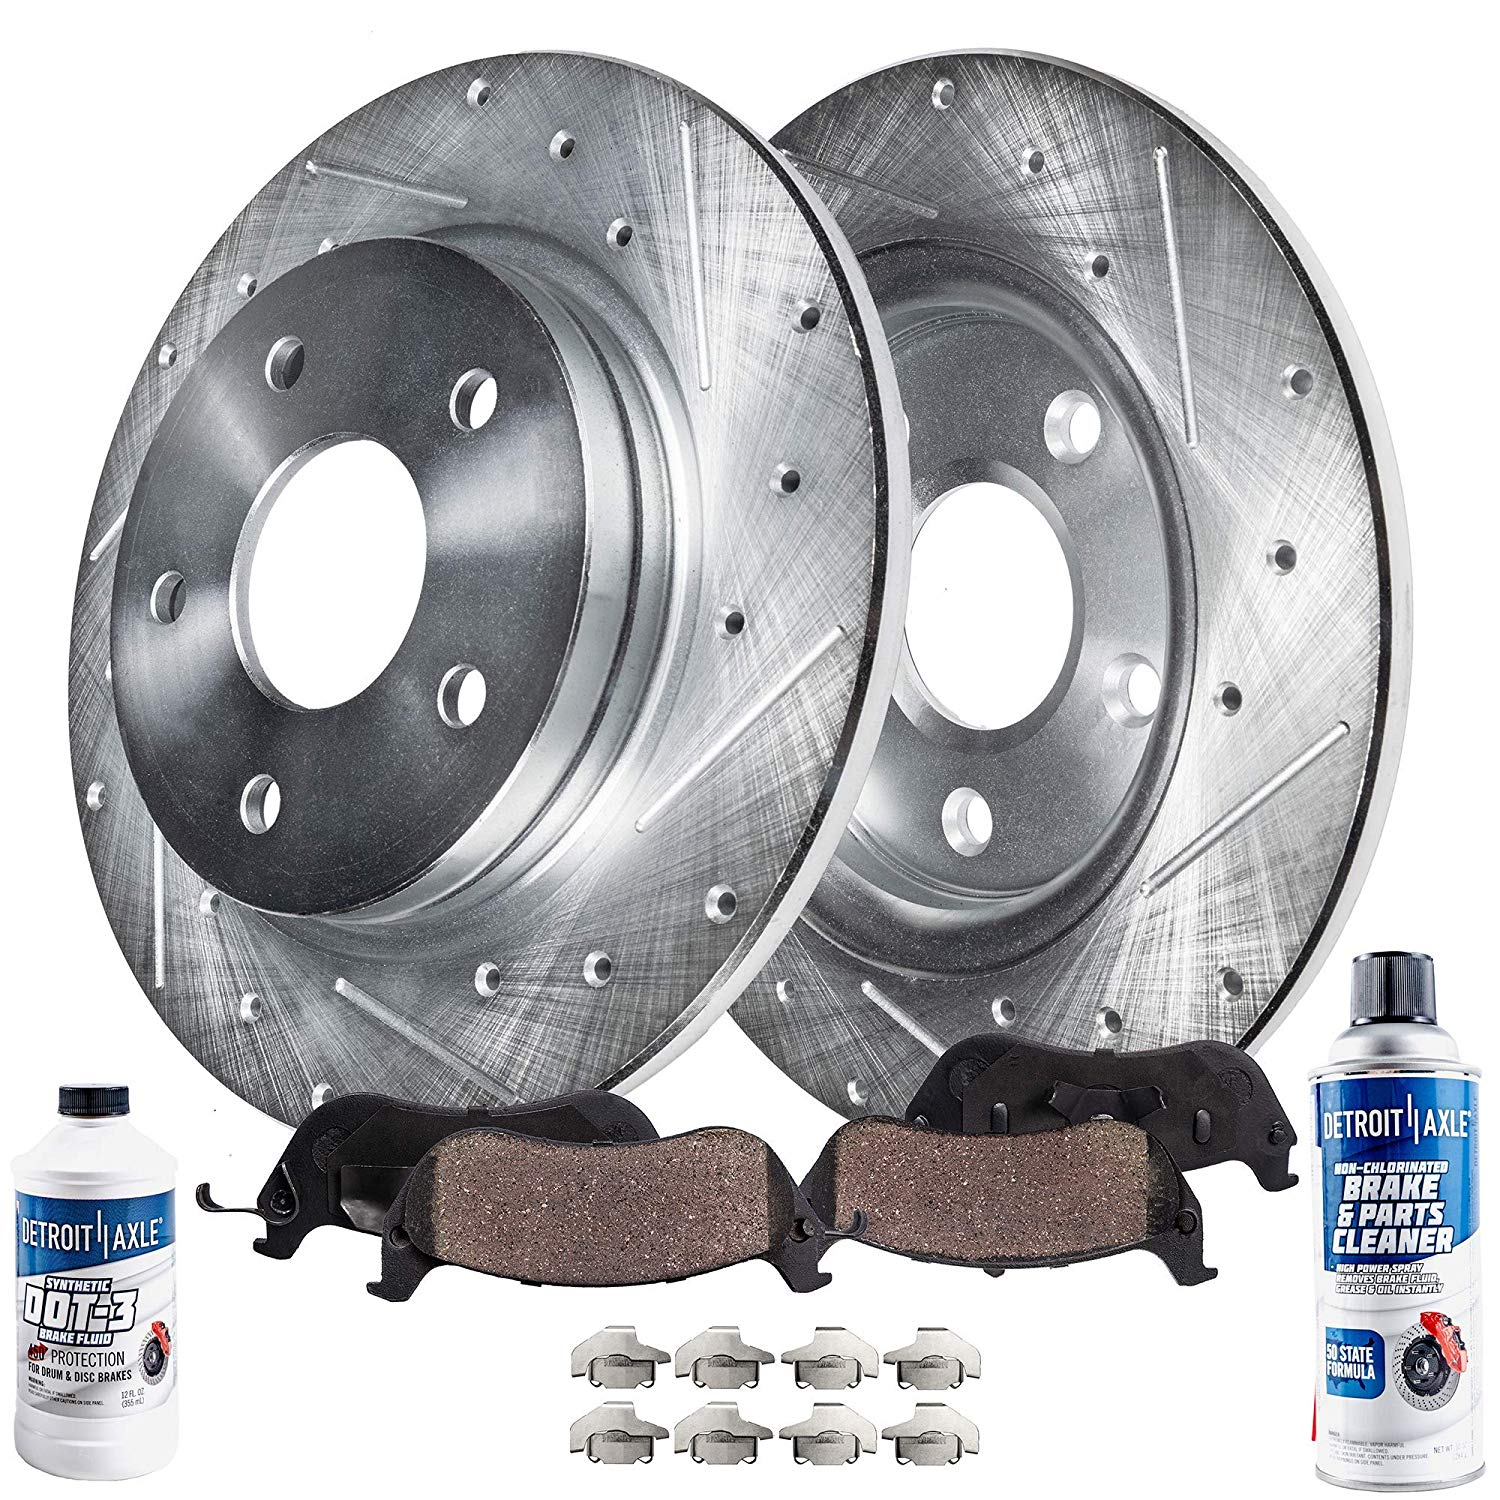 Front Disc Brake Rotors and Ceramic Brake Pads for 2016 Subaru WRX With Two Years Manufacturer Warranty Brake Pads Include Hardware